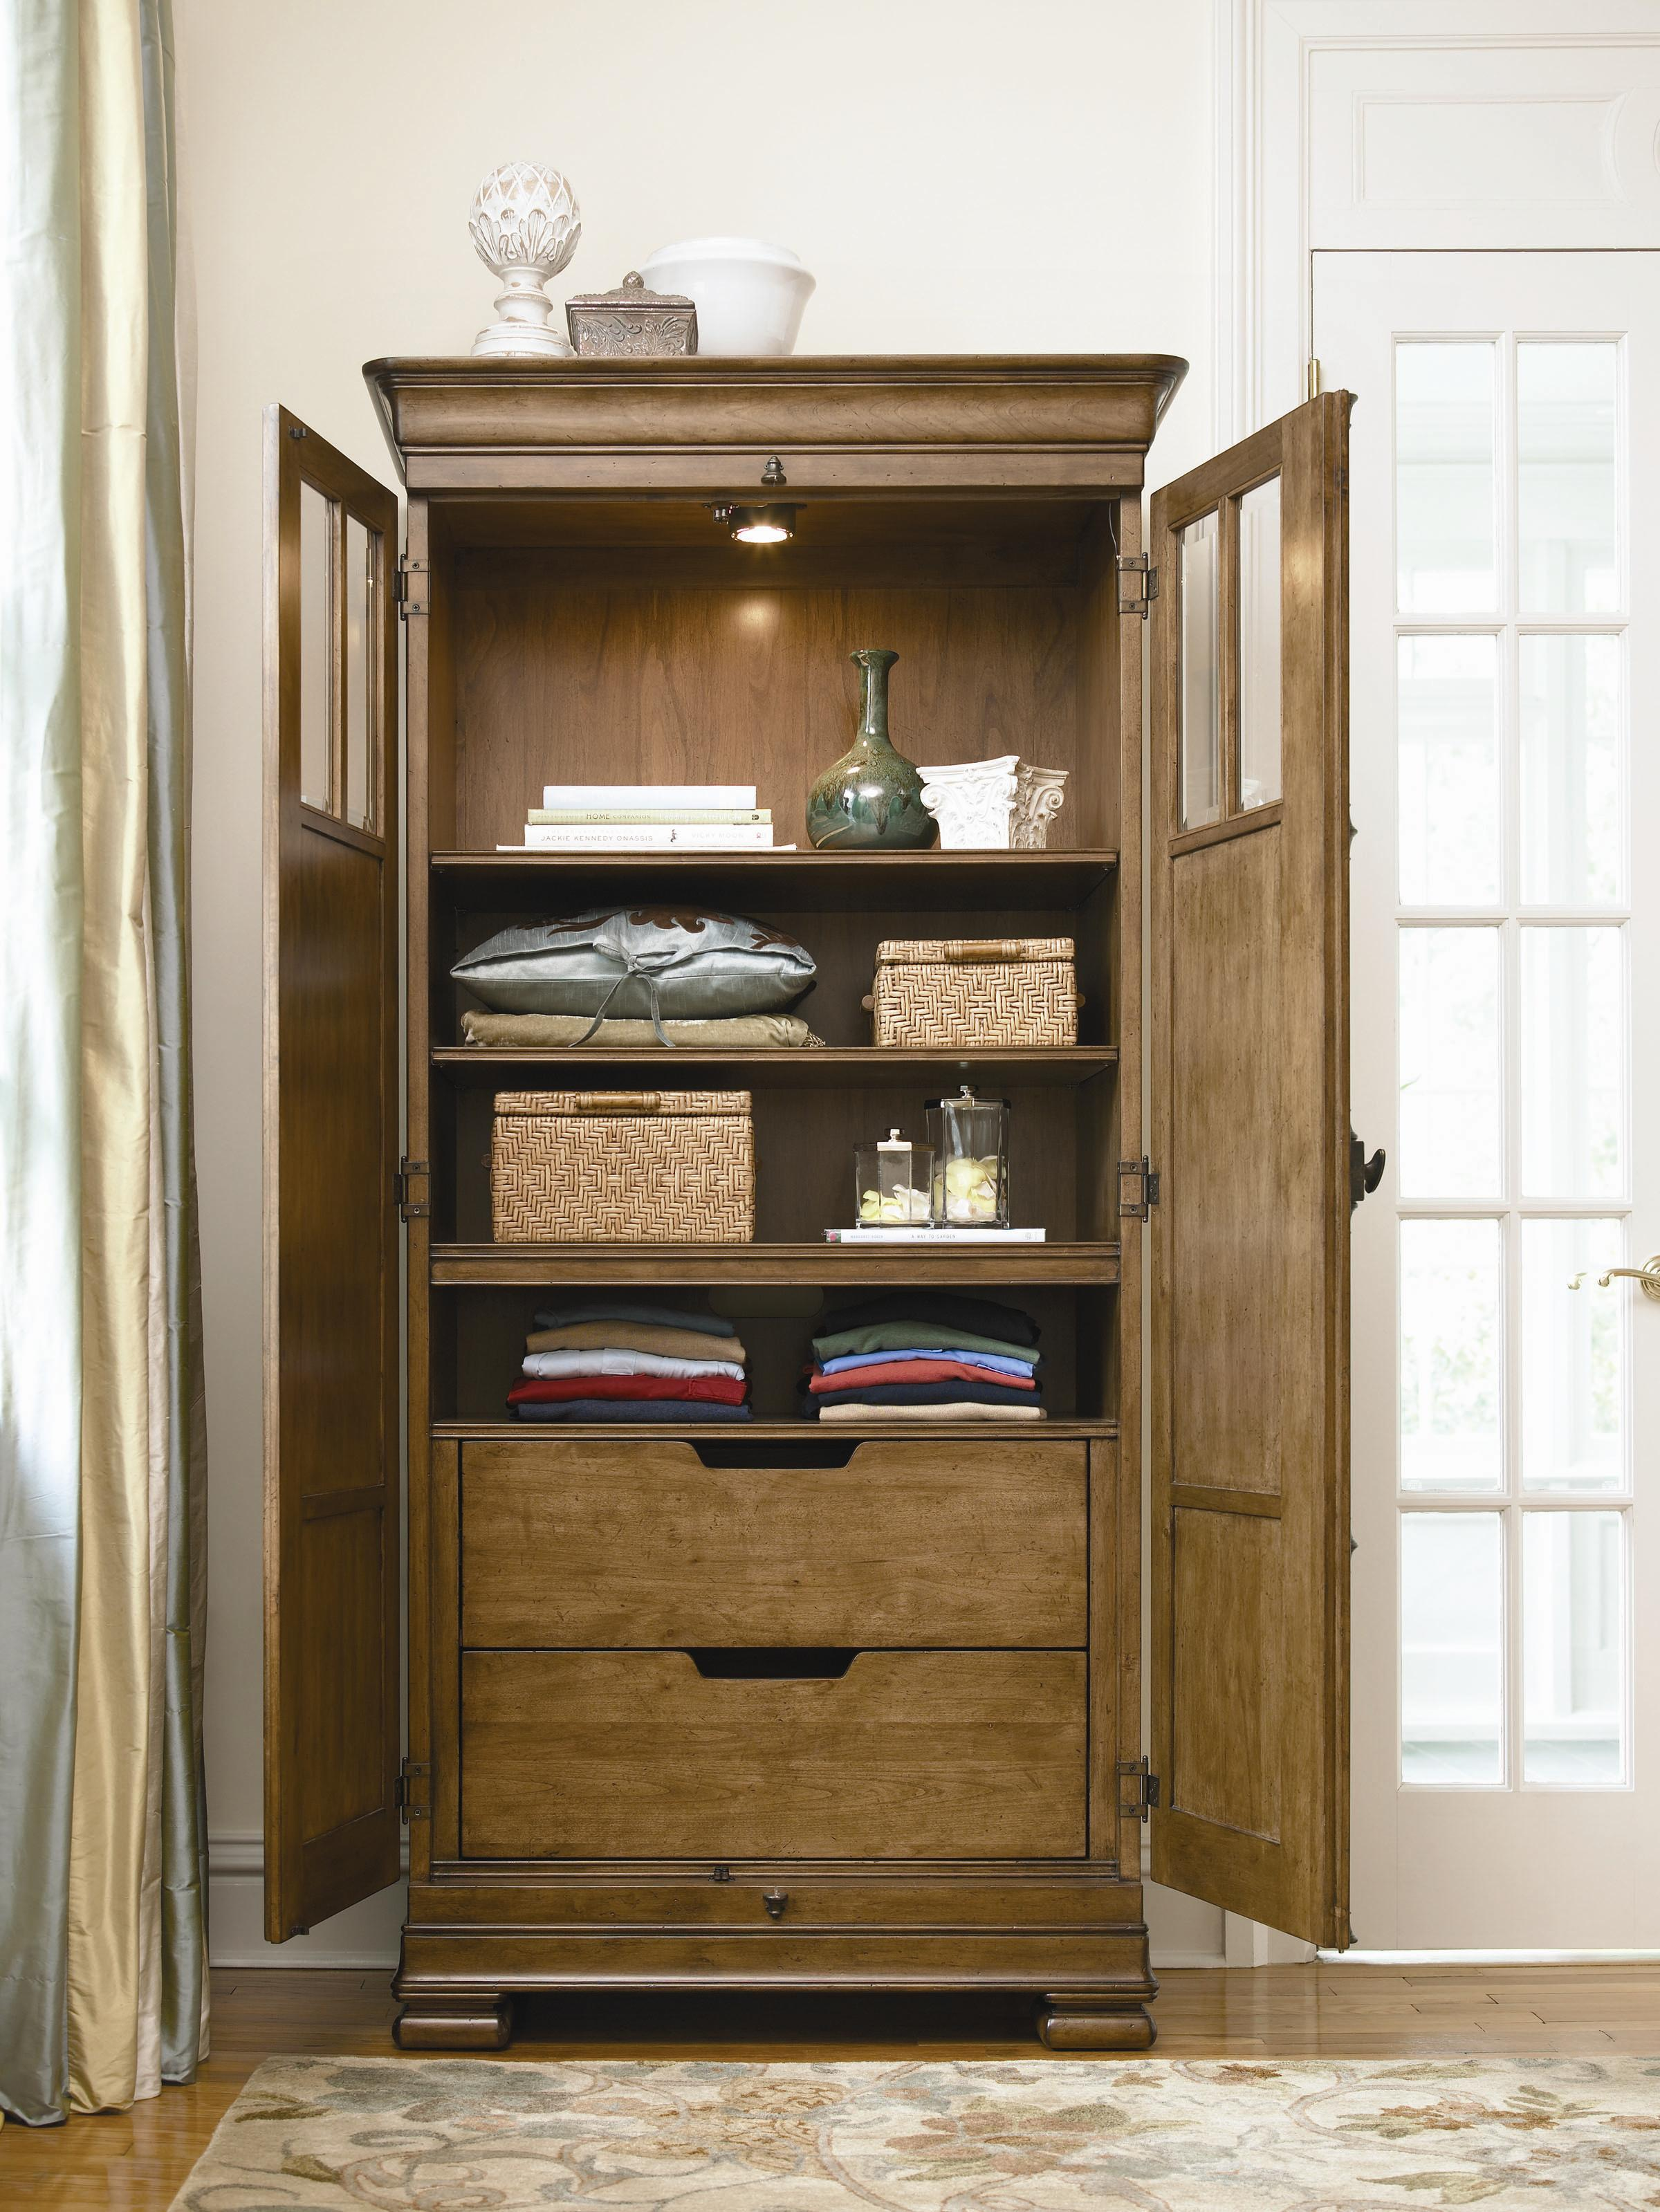 wittman co newton falls tall cabinet morris home armoires. Black Bedroom Furniture Sets. Home Design Ideas